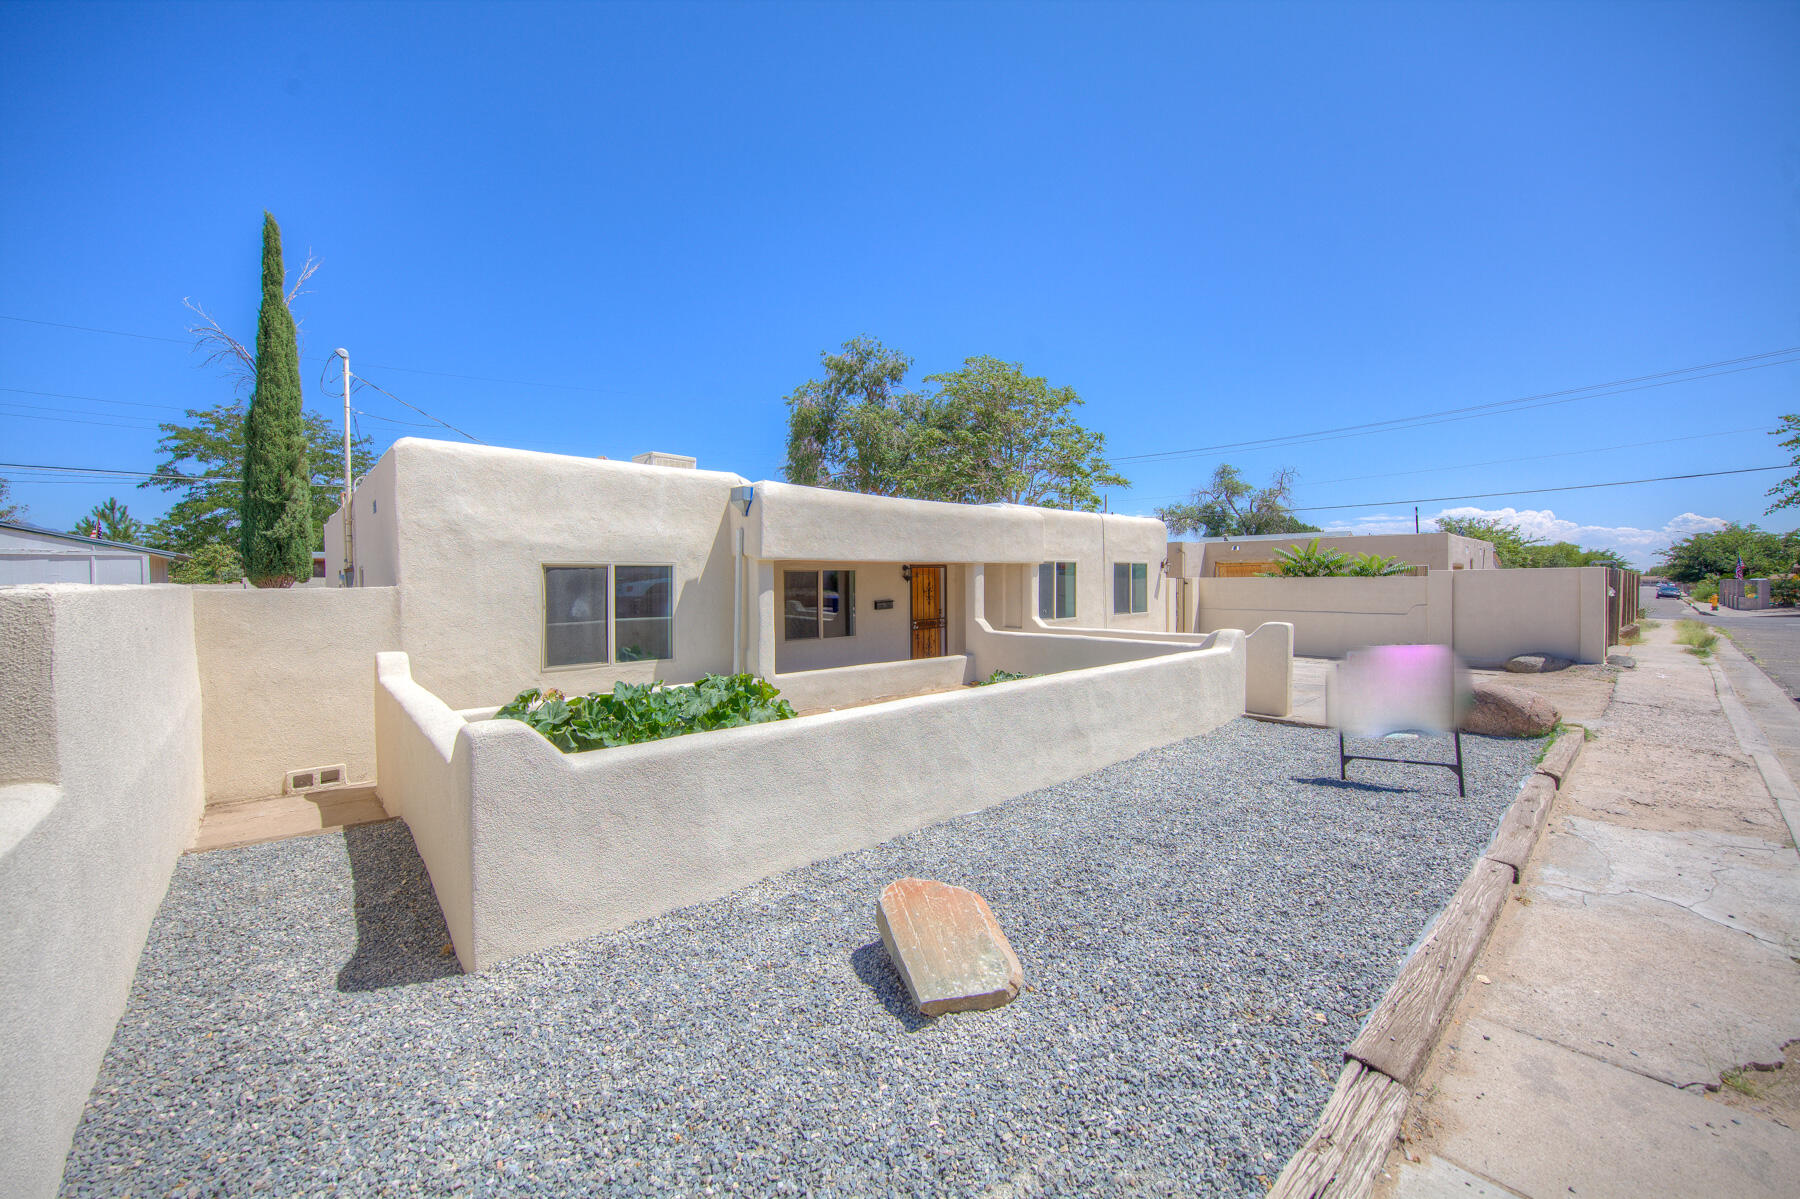 4 bedroom 2 bath home. Great location, close to parks, shops and freeway. Come see your new home today.